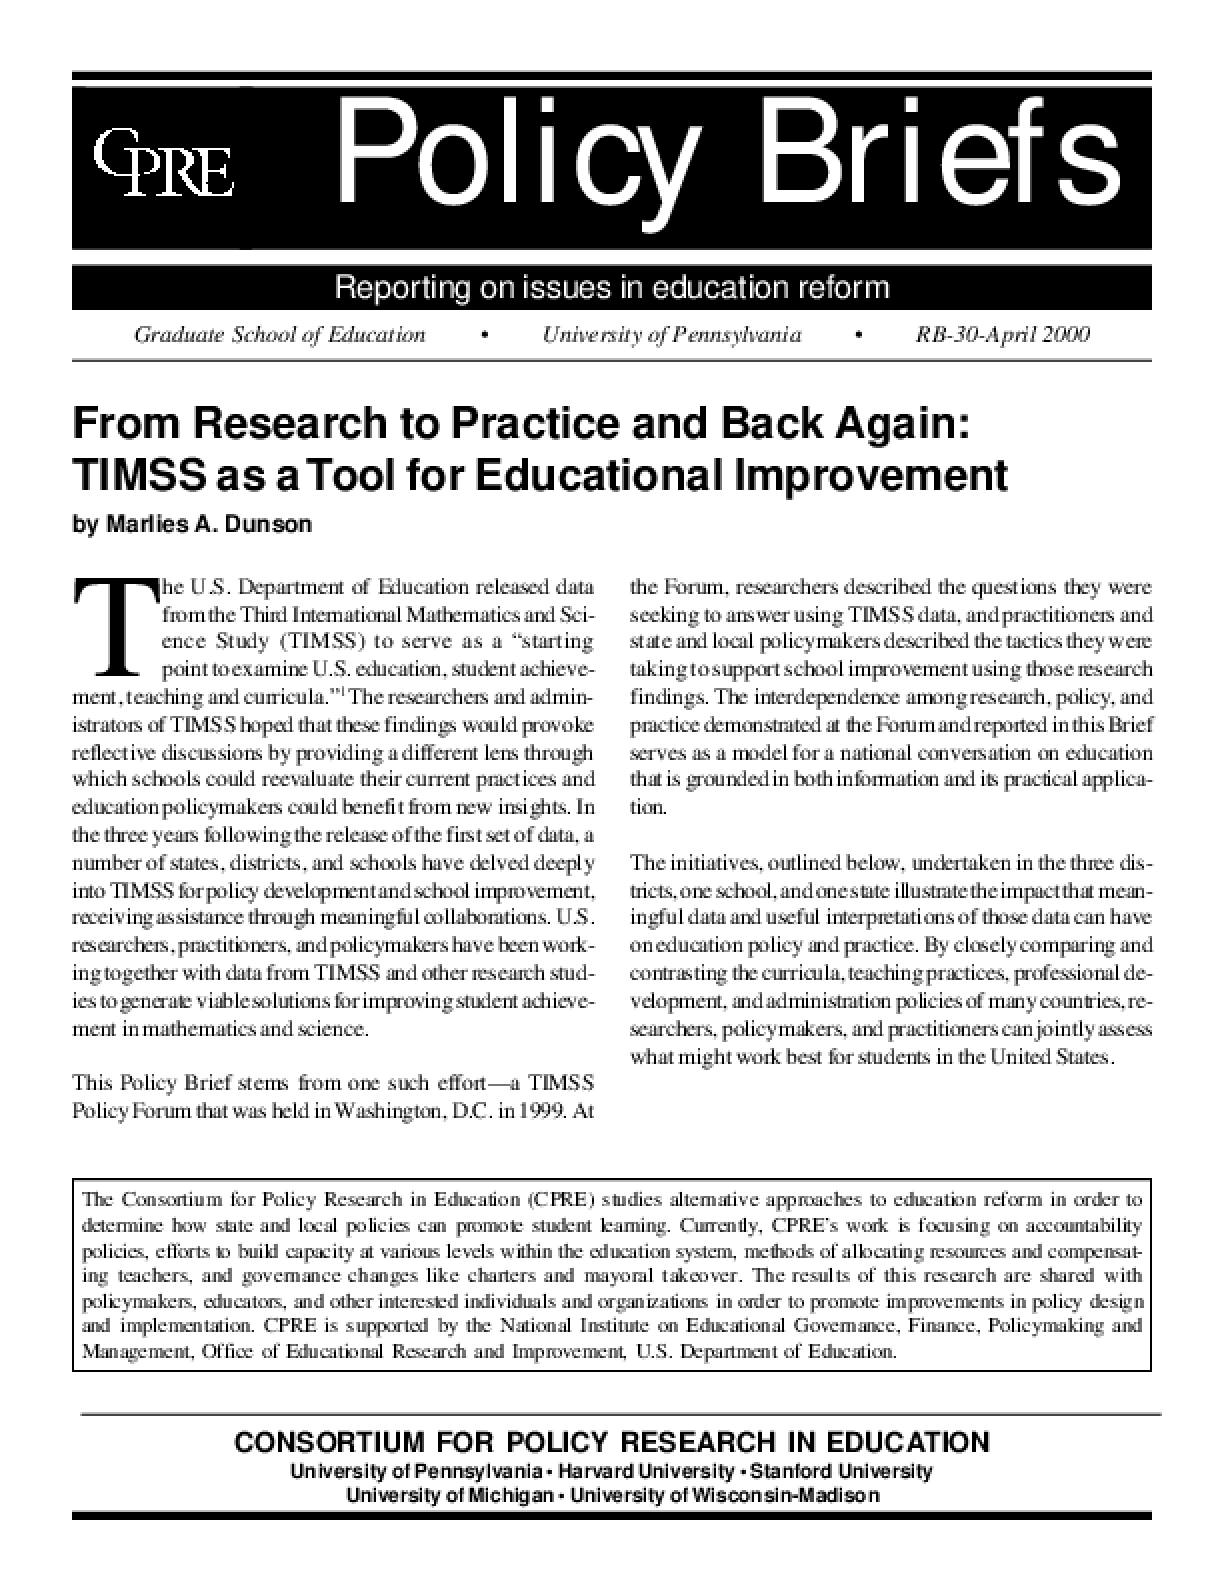 From Research to Practice and Back Again: TIMSS as a Tool for Educational Improvement